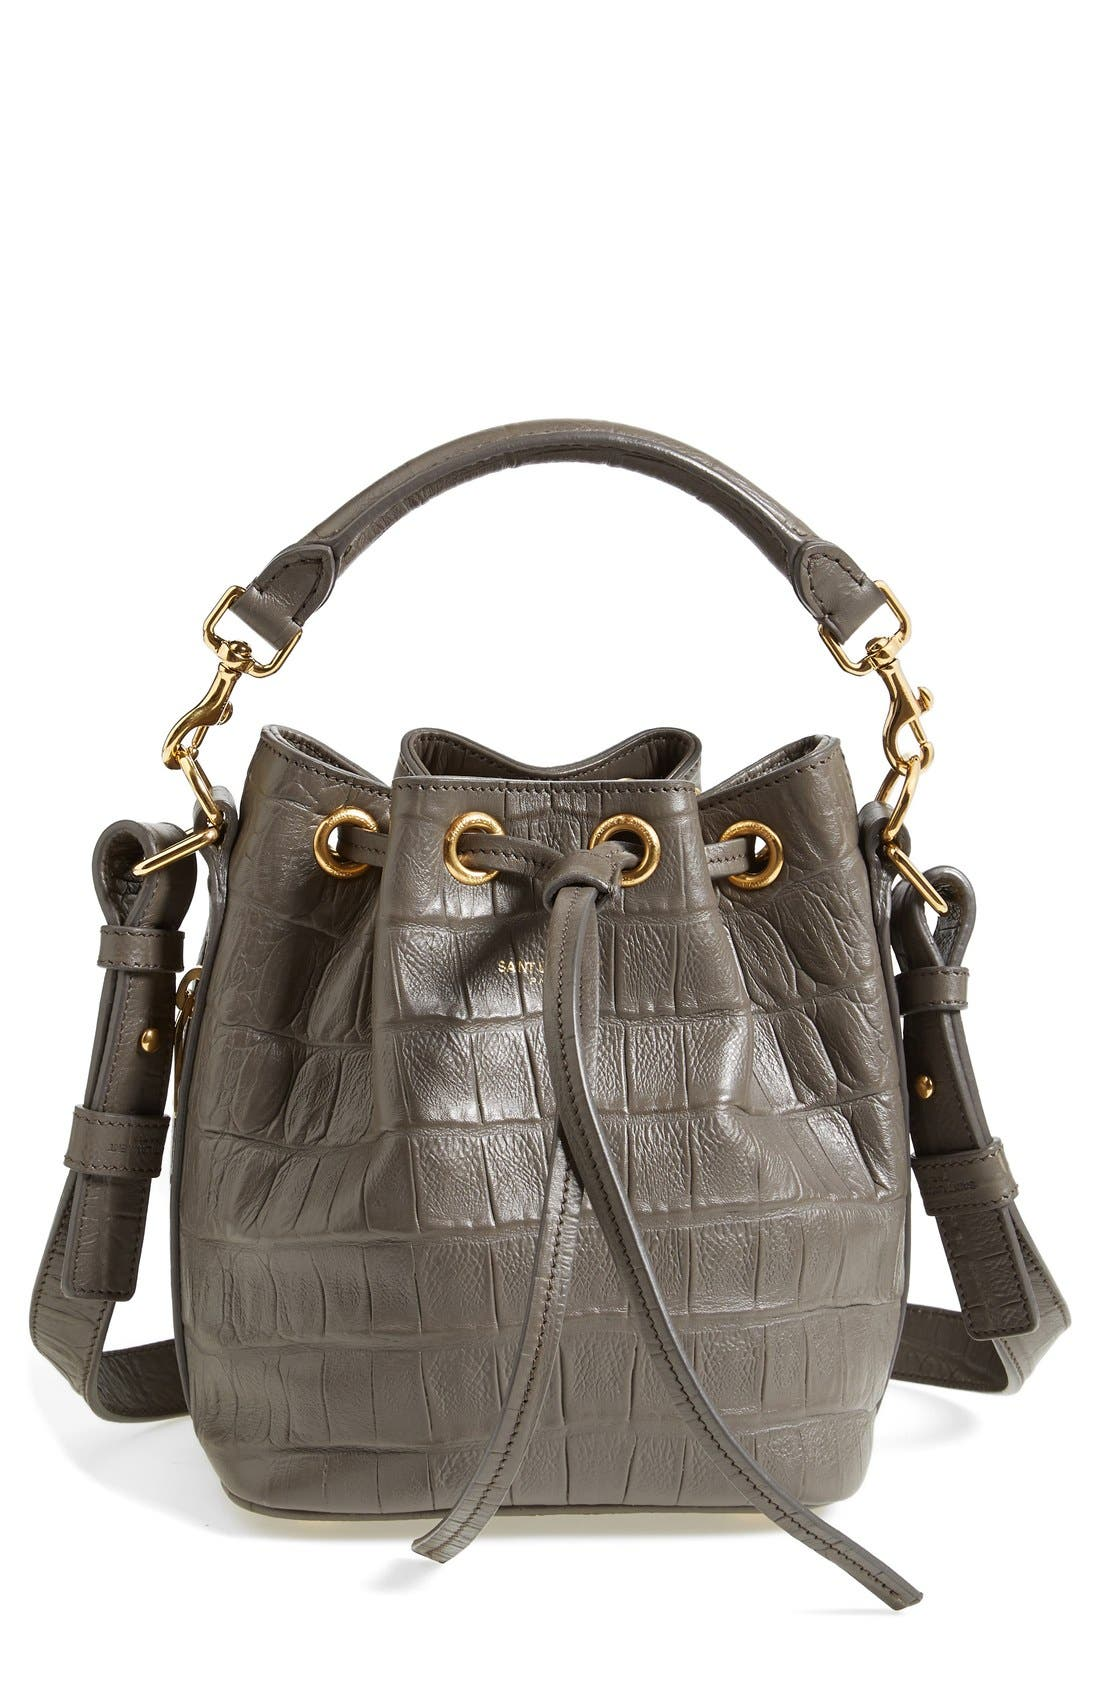 Alternate Image 1 Selected - Saint Laurent 'Small Seau' Croc Embossed Leather Bucket Bag